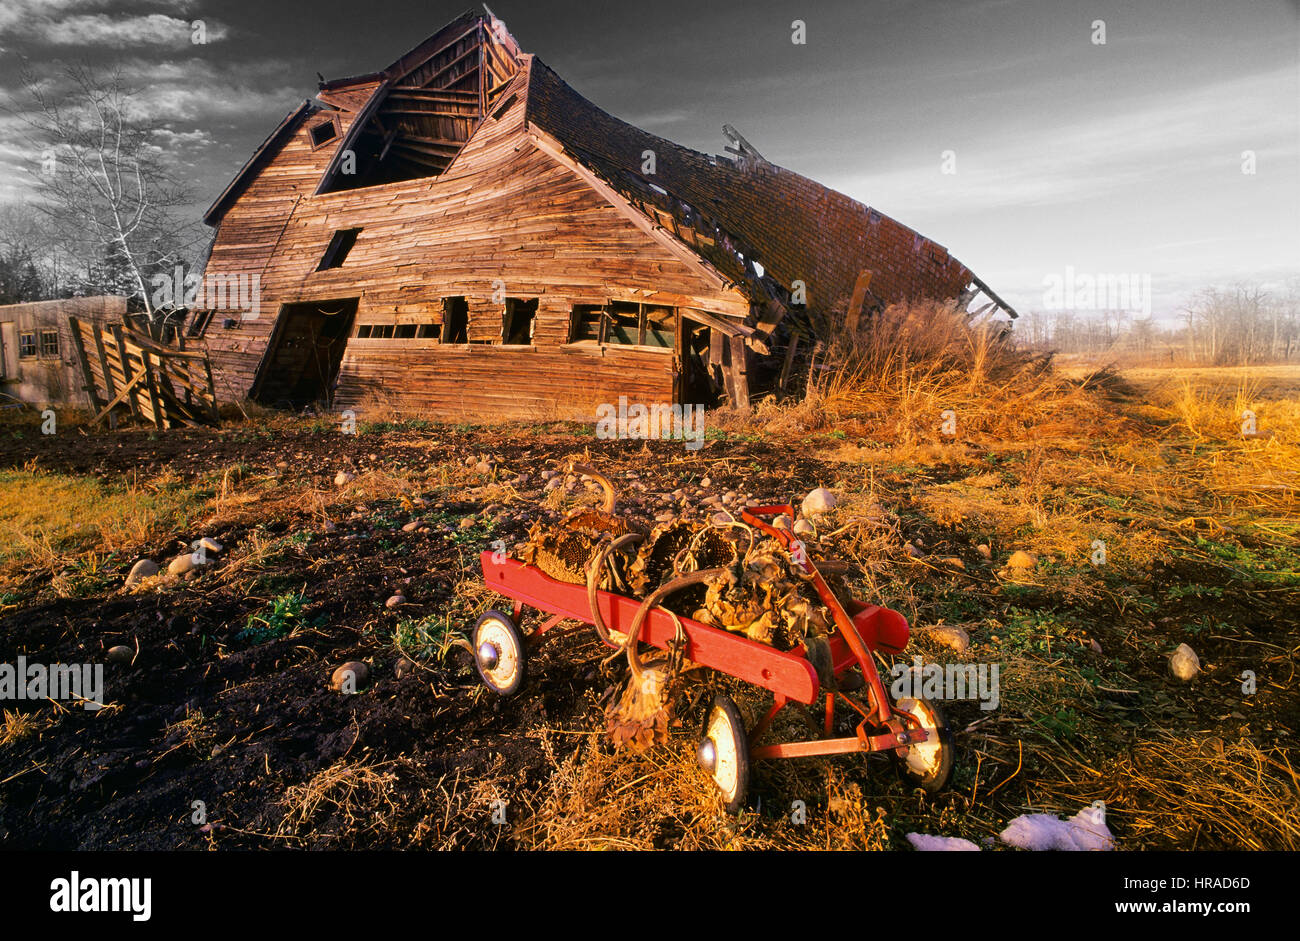 Discarded Toy Wagon in front of a Falling Down Barn - Stock Image